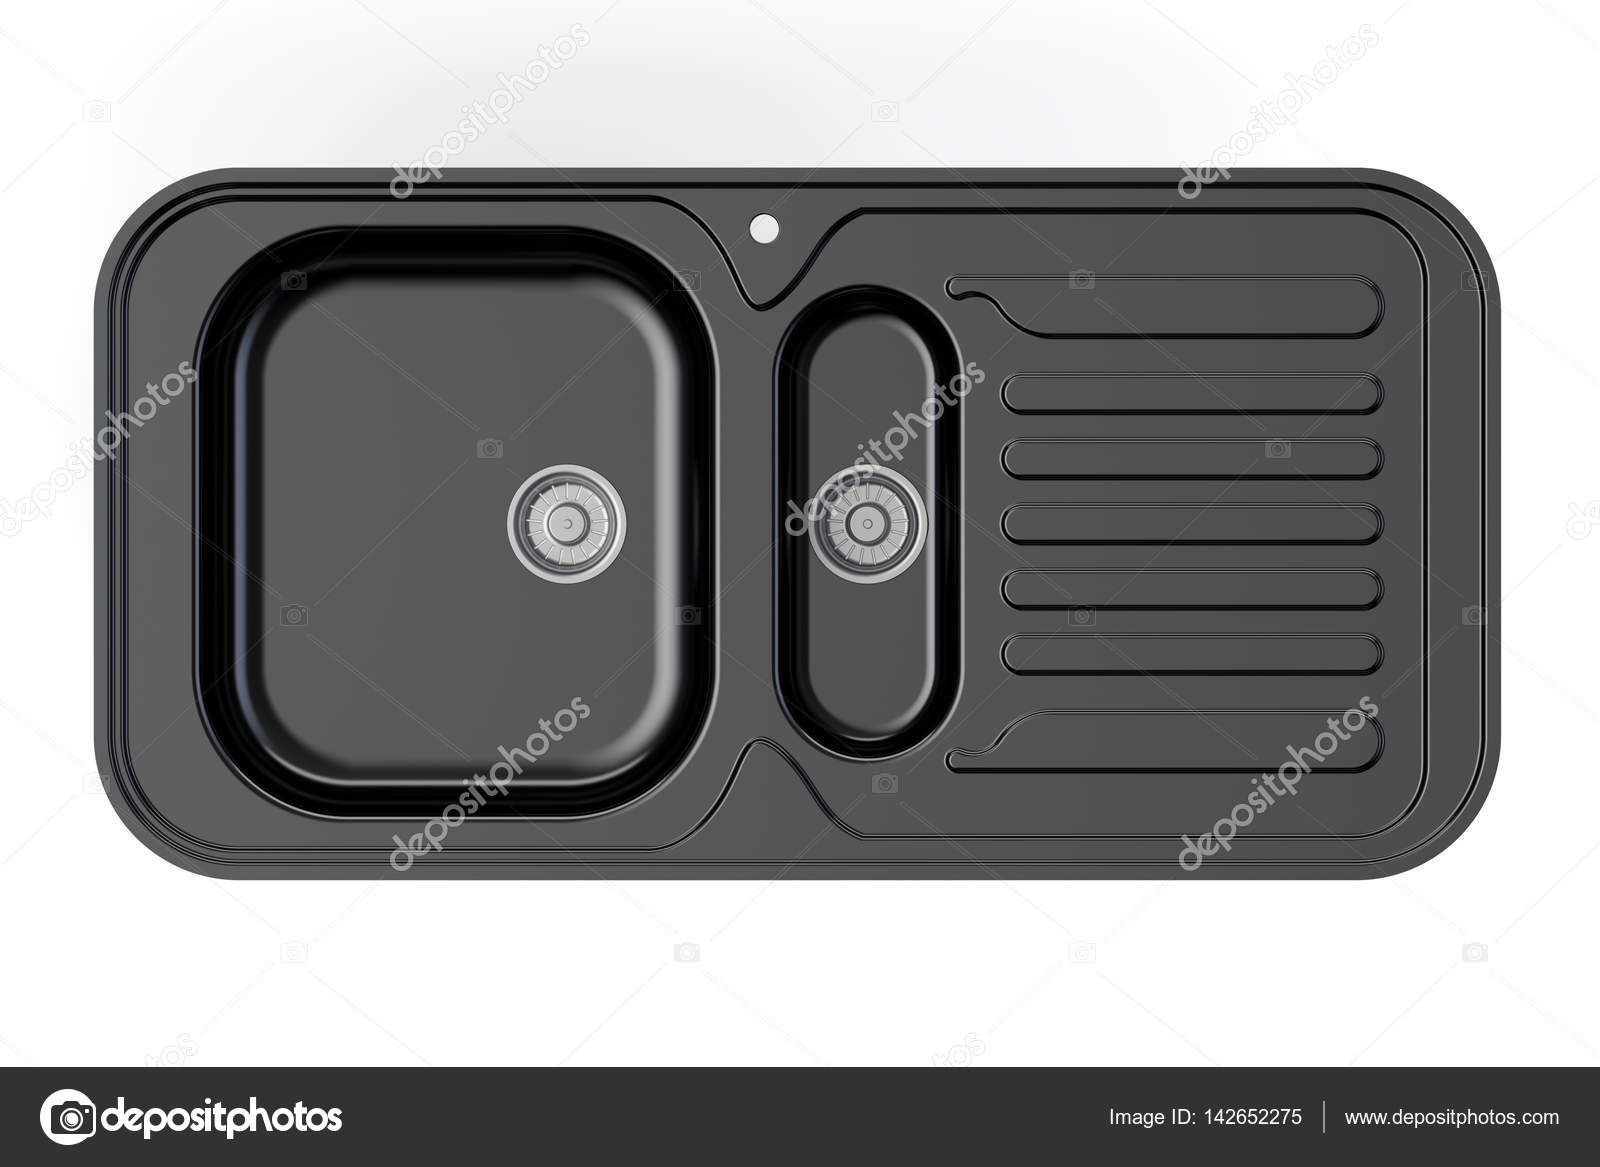 Black kitchen sink top view 3d rendering stock photo alexlmx black kitchen sink top view 3d rendering isolated on white background photo by alexlmx workwithnaturefo